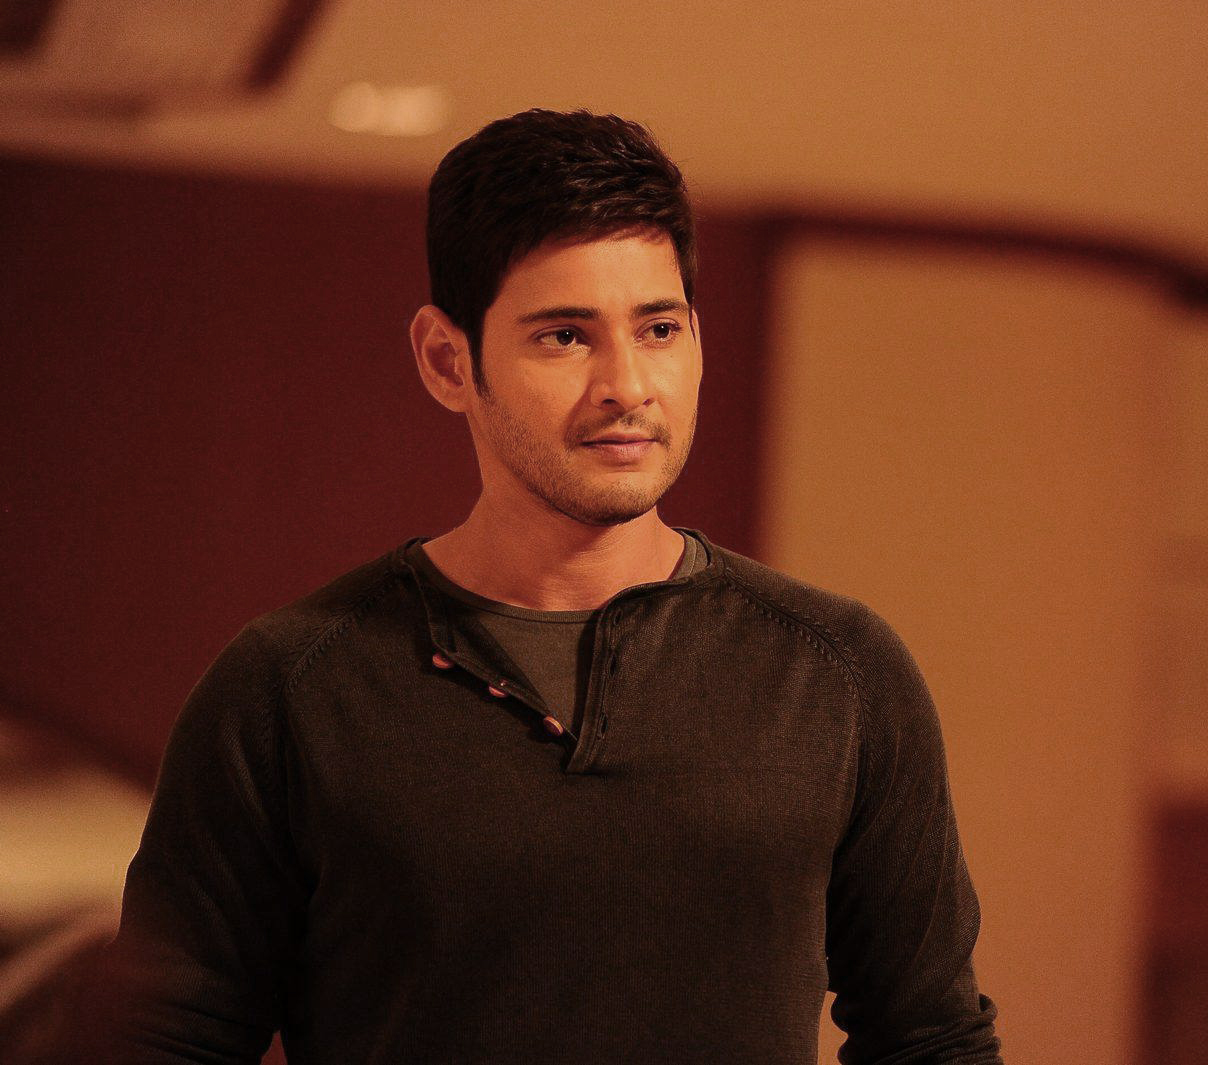 Mahesh Babu Images Wallpaper Photo pics Download